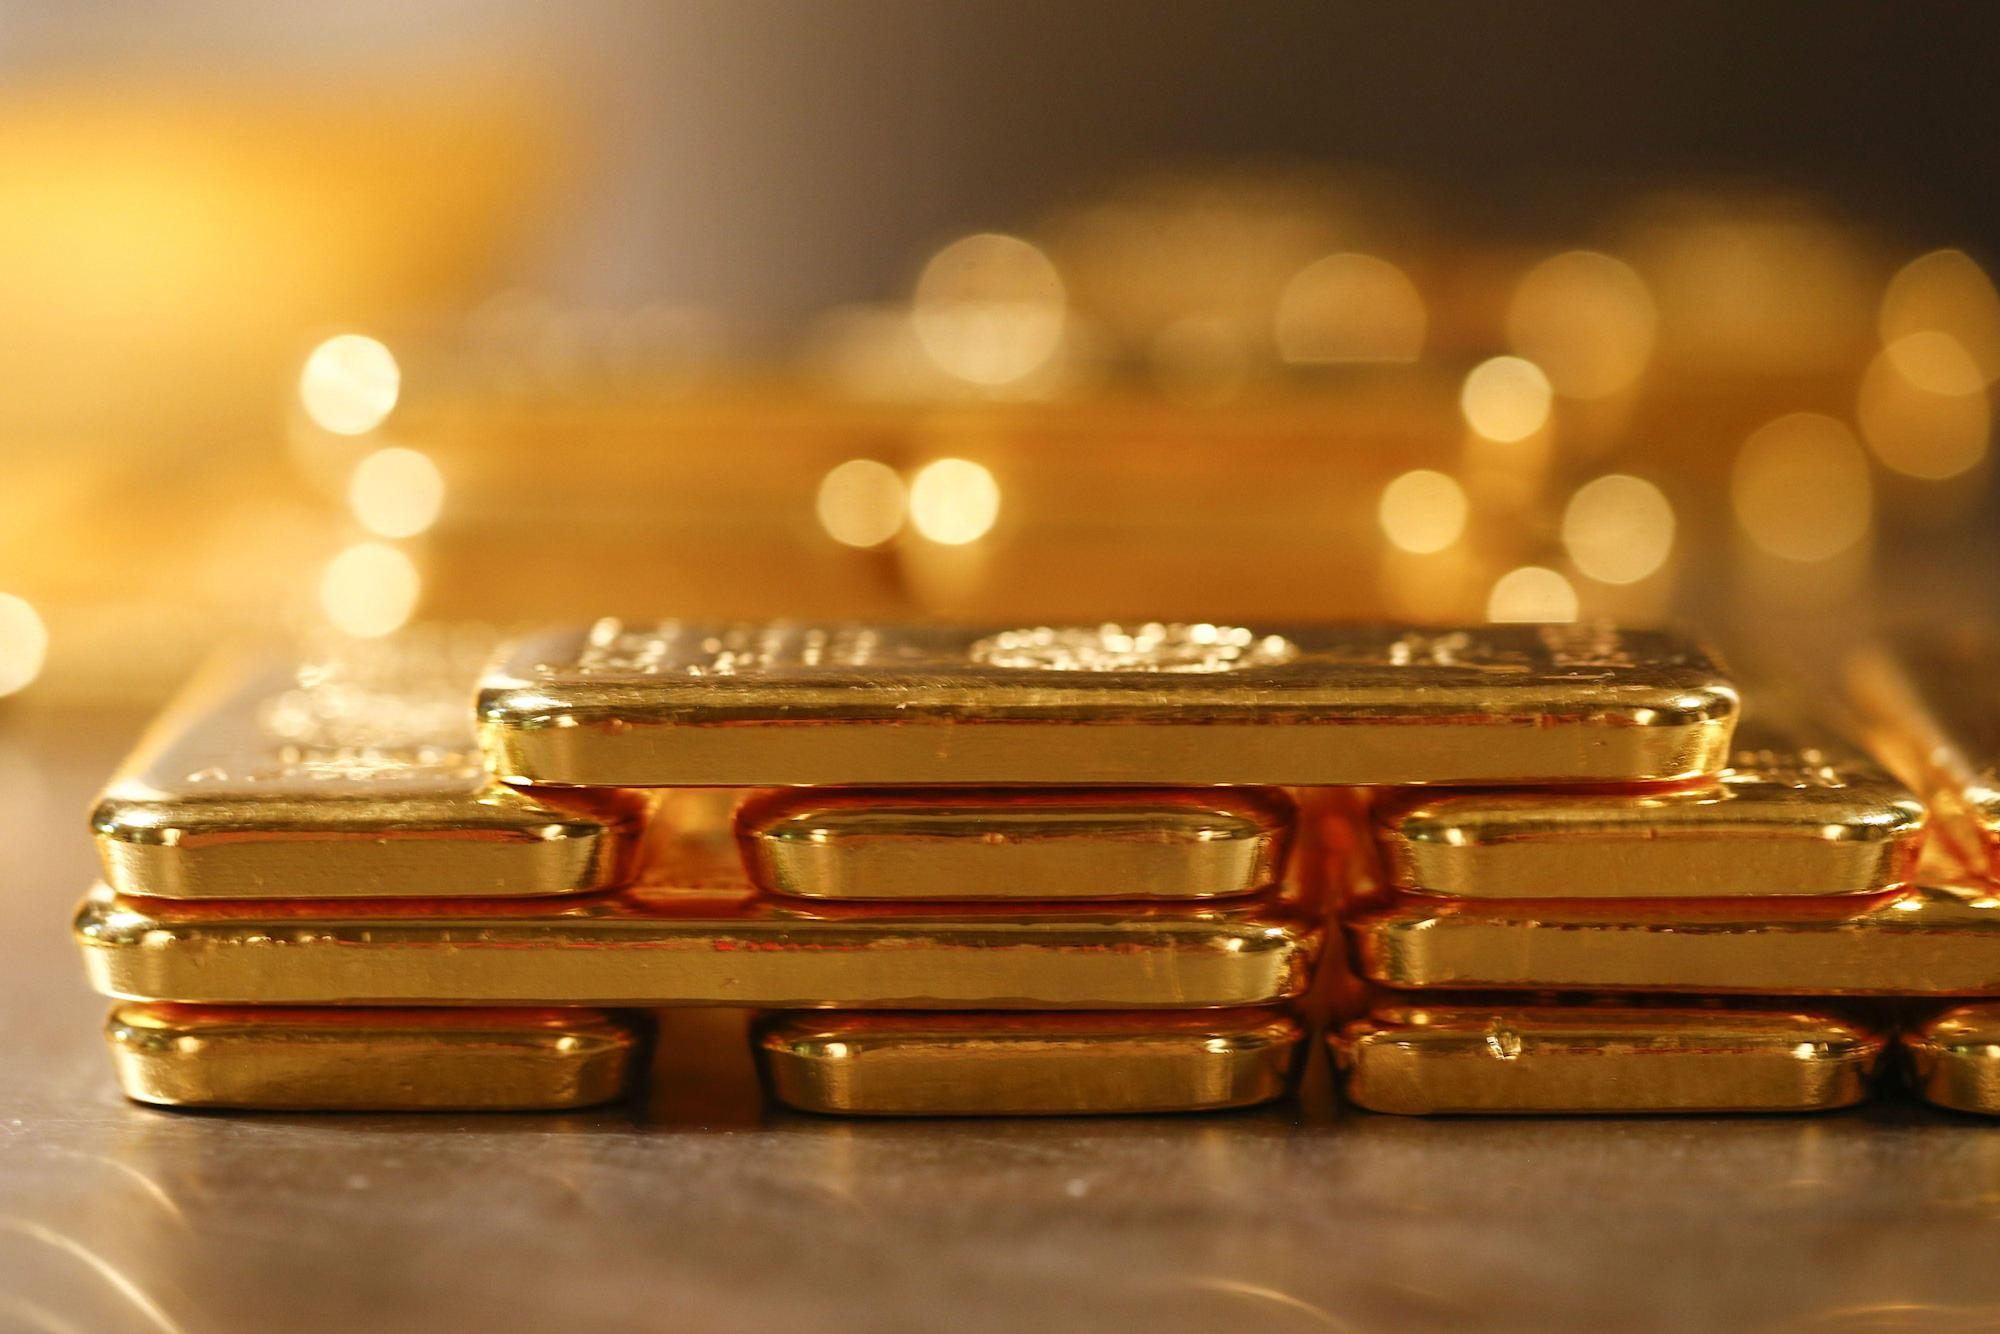 Gold Slips as Yellen's Inflation Comments Lift Treasury Yields – Yahoo Finance